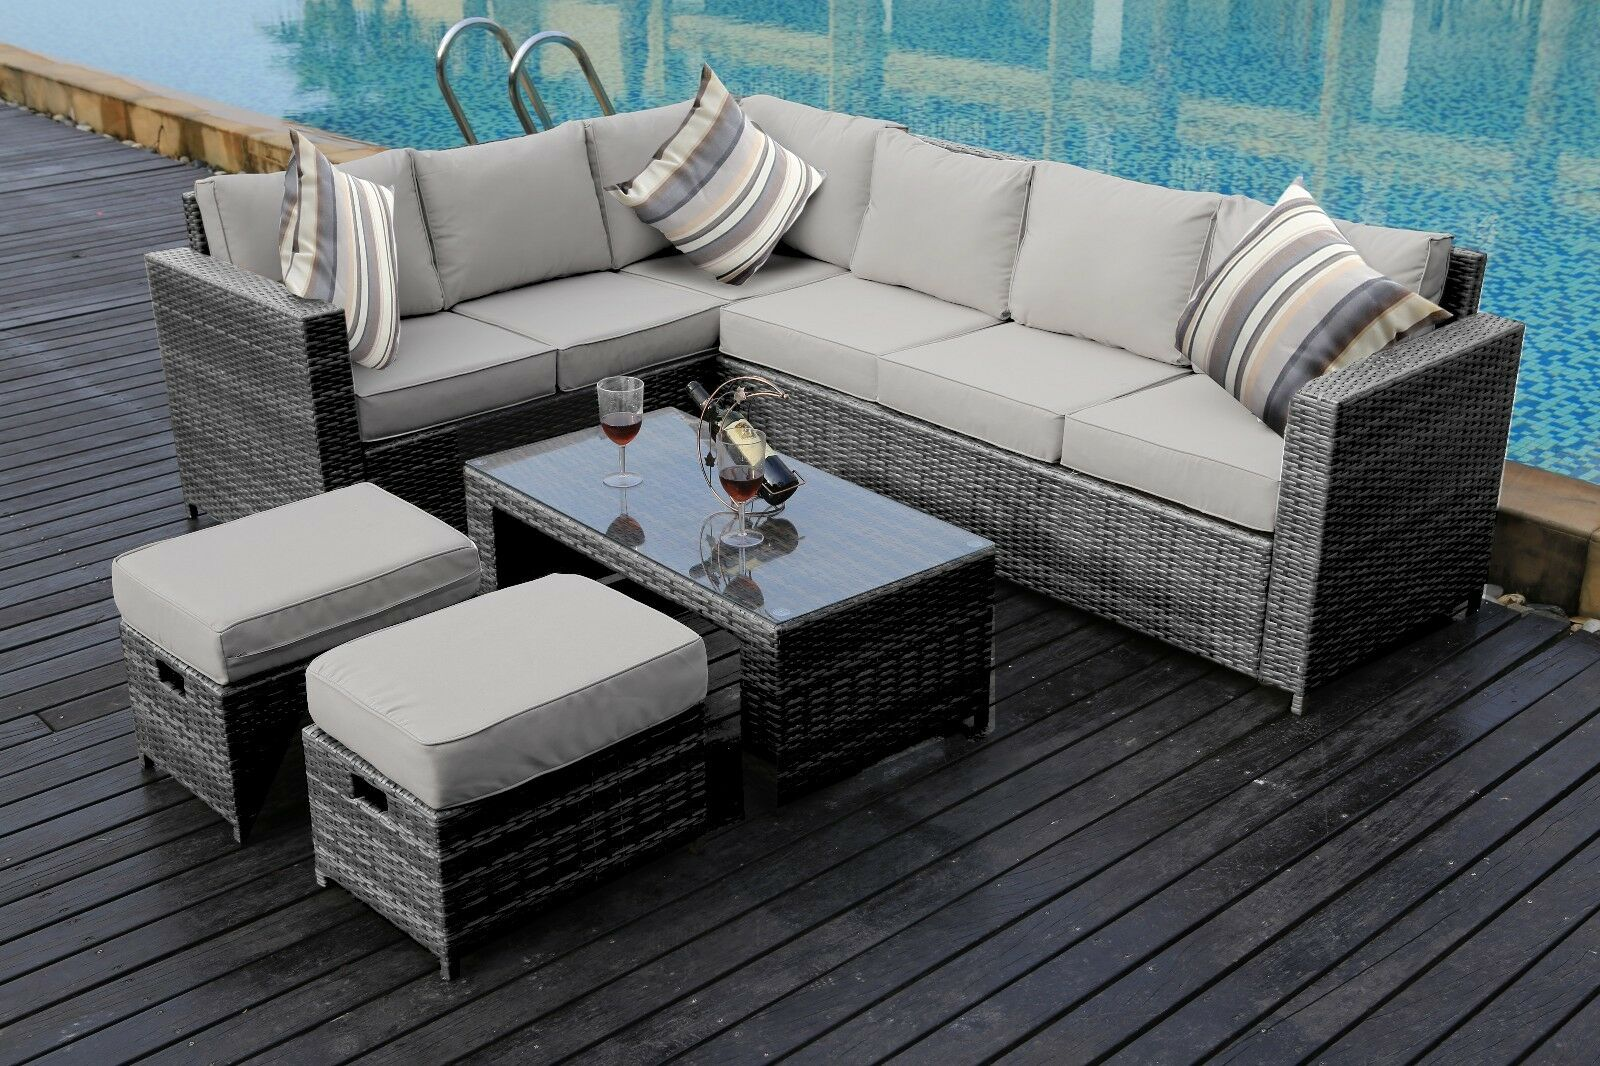 New Conservatory Modular 8 Seater Rattan Corner Sofa Set Garden Furniture Grey